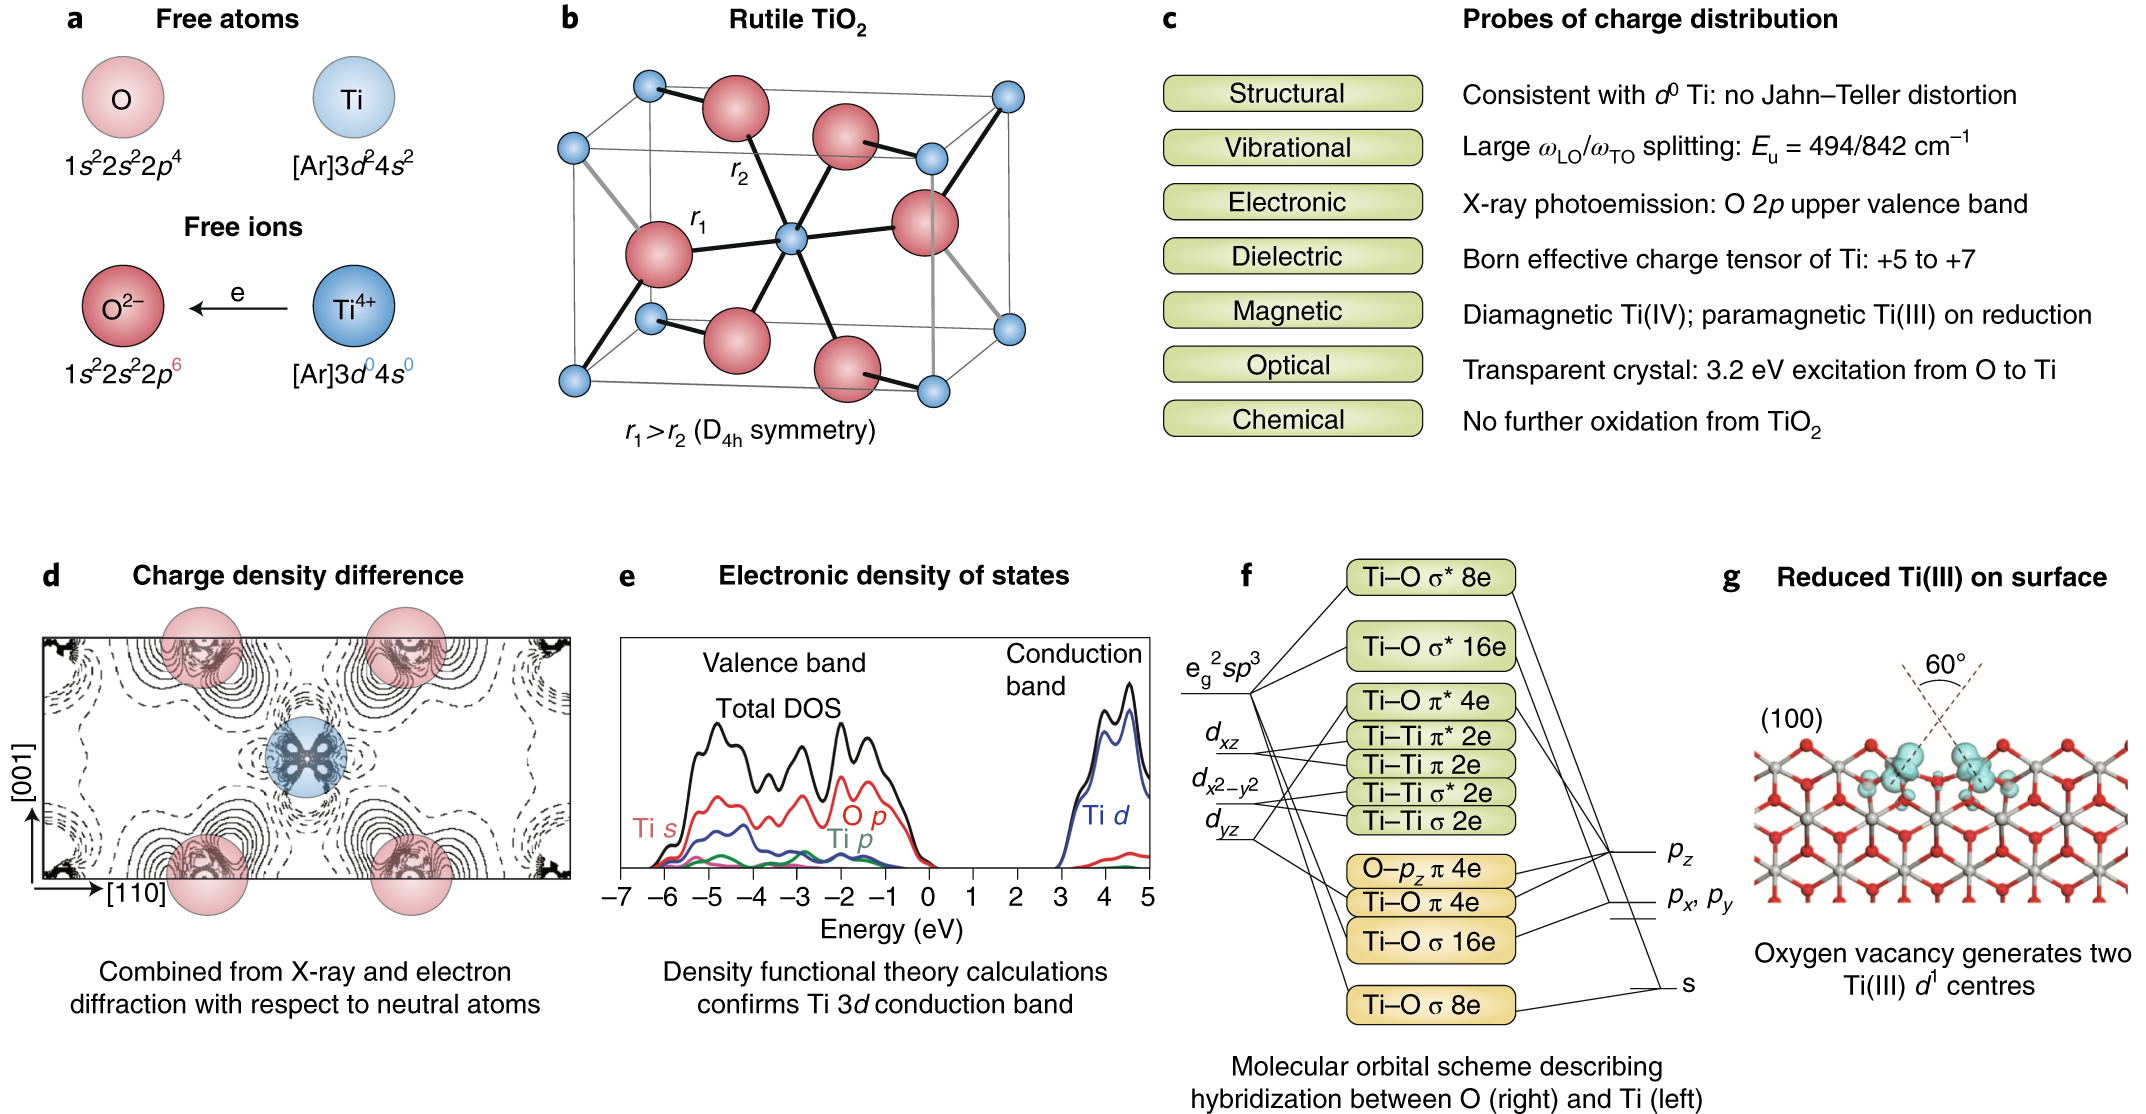 Oxidation states and ionicity | Nature Materials